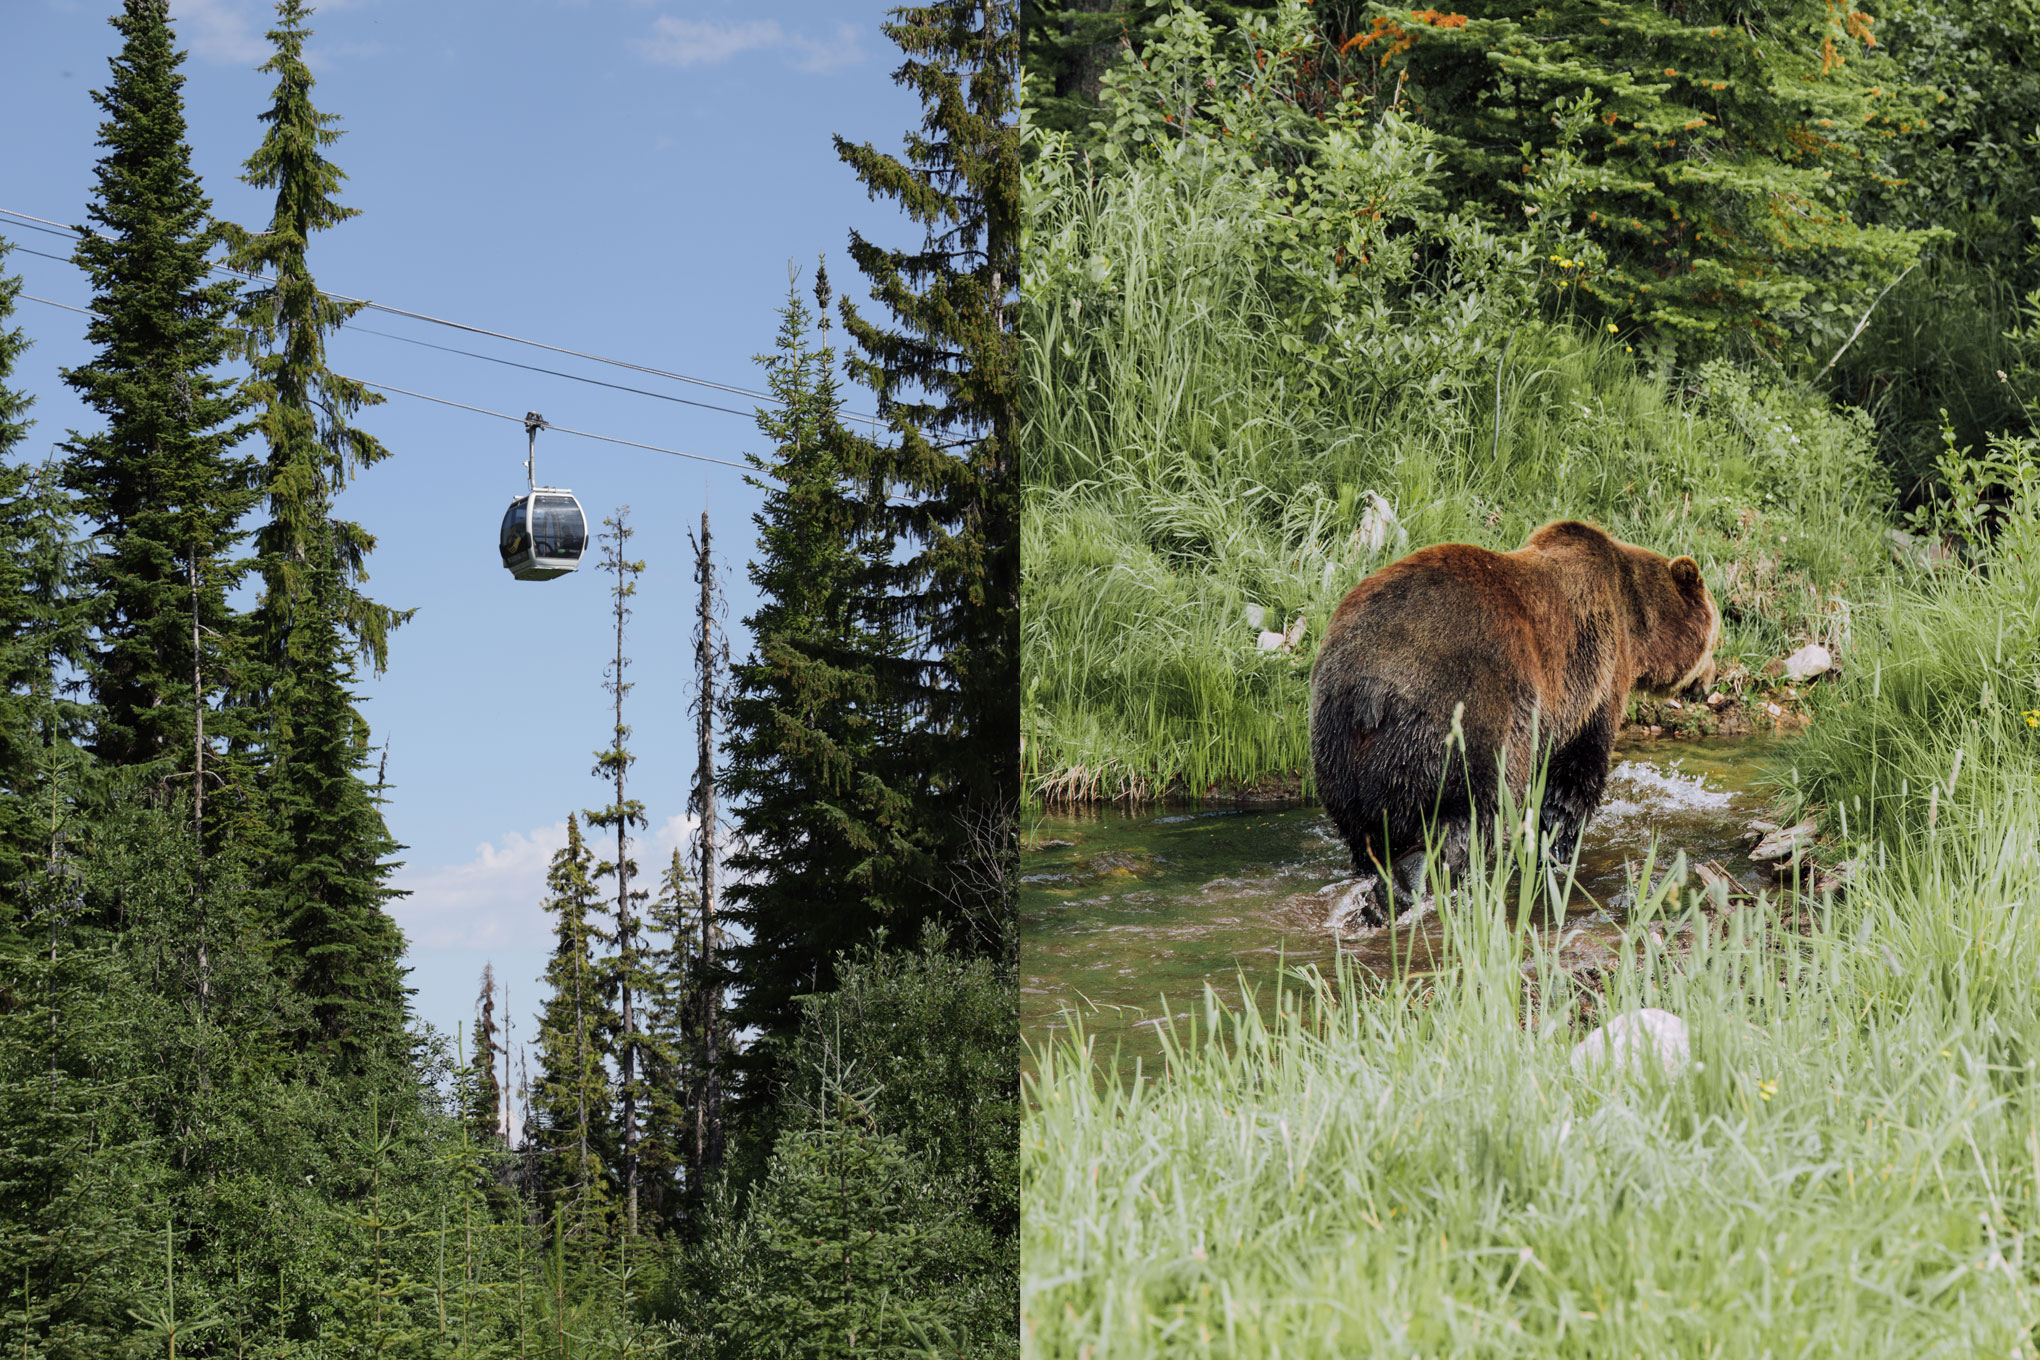 Left: Gondola ride up Kicking Horse Mountain. Right: Boo the Grizzly Bear!